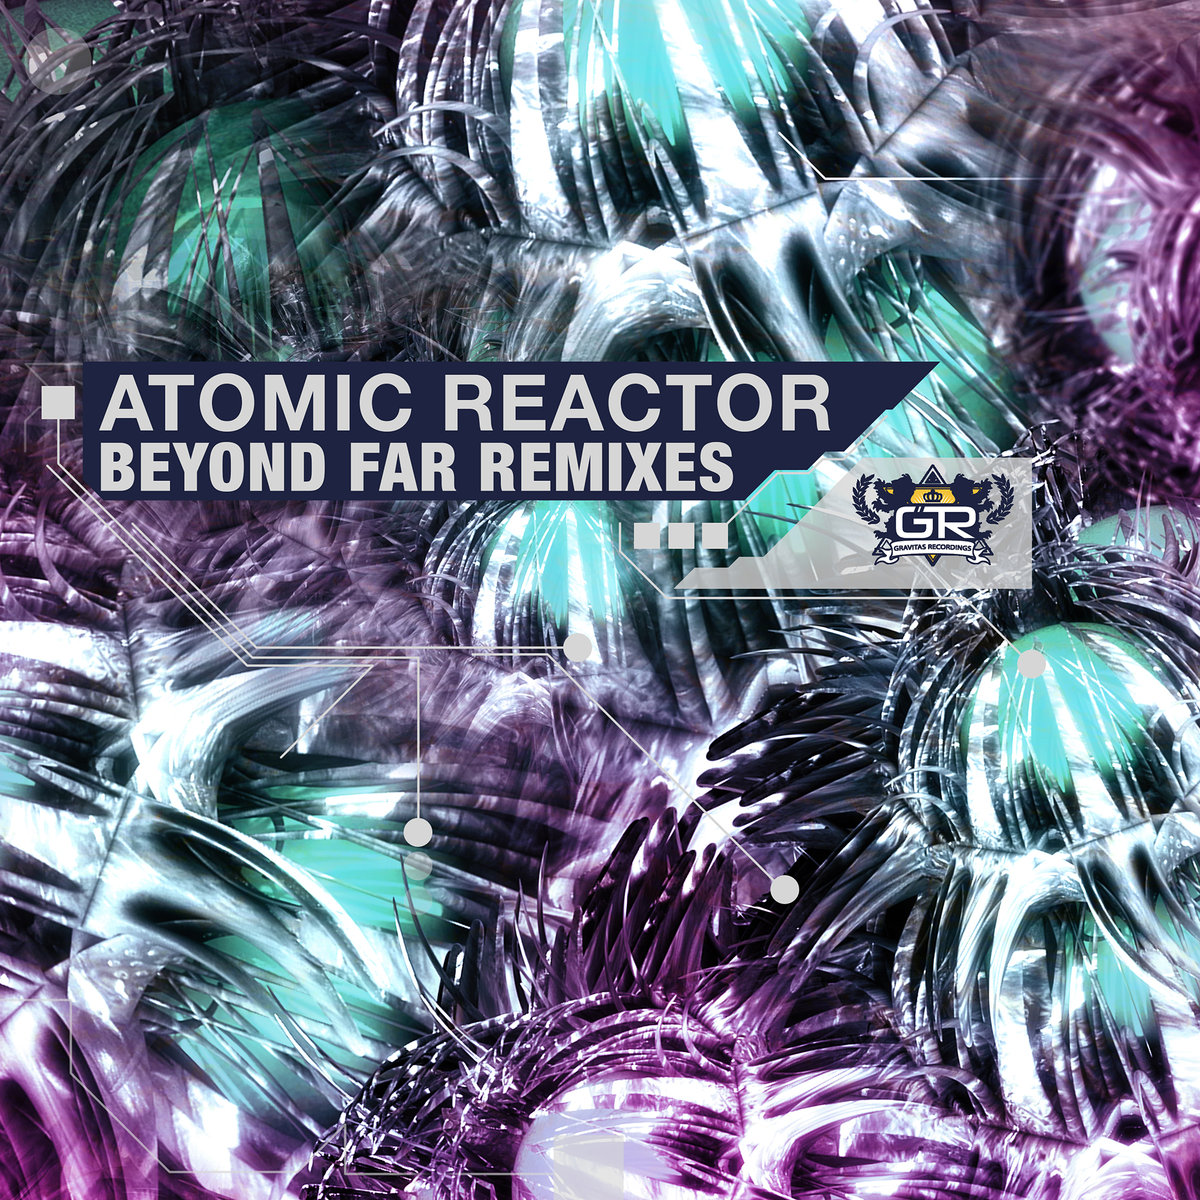 Atomic Reactor - Beyond Far (Gruff Remix) @ 'Beyond Far Remixes' album (Austin)